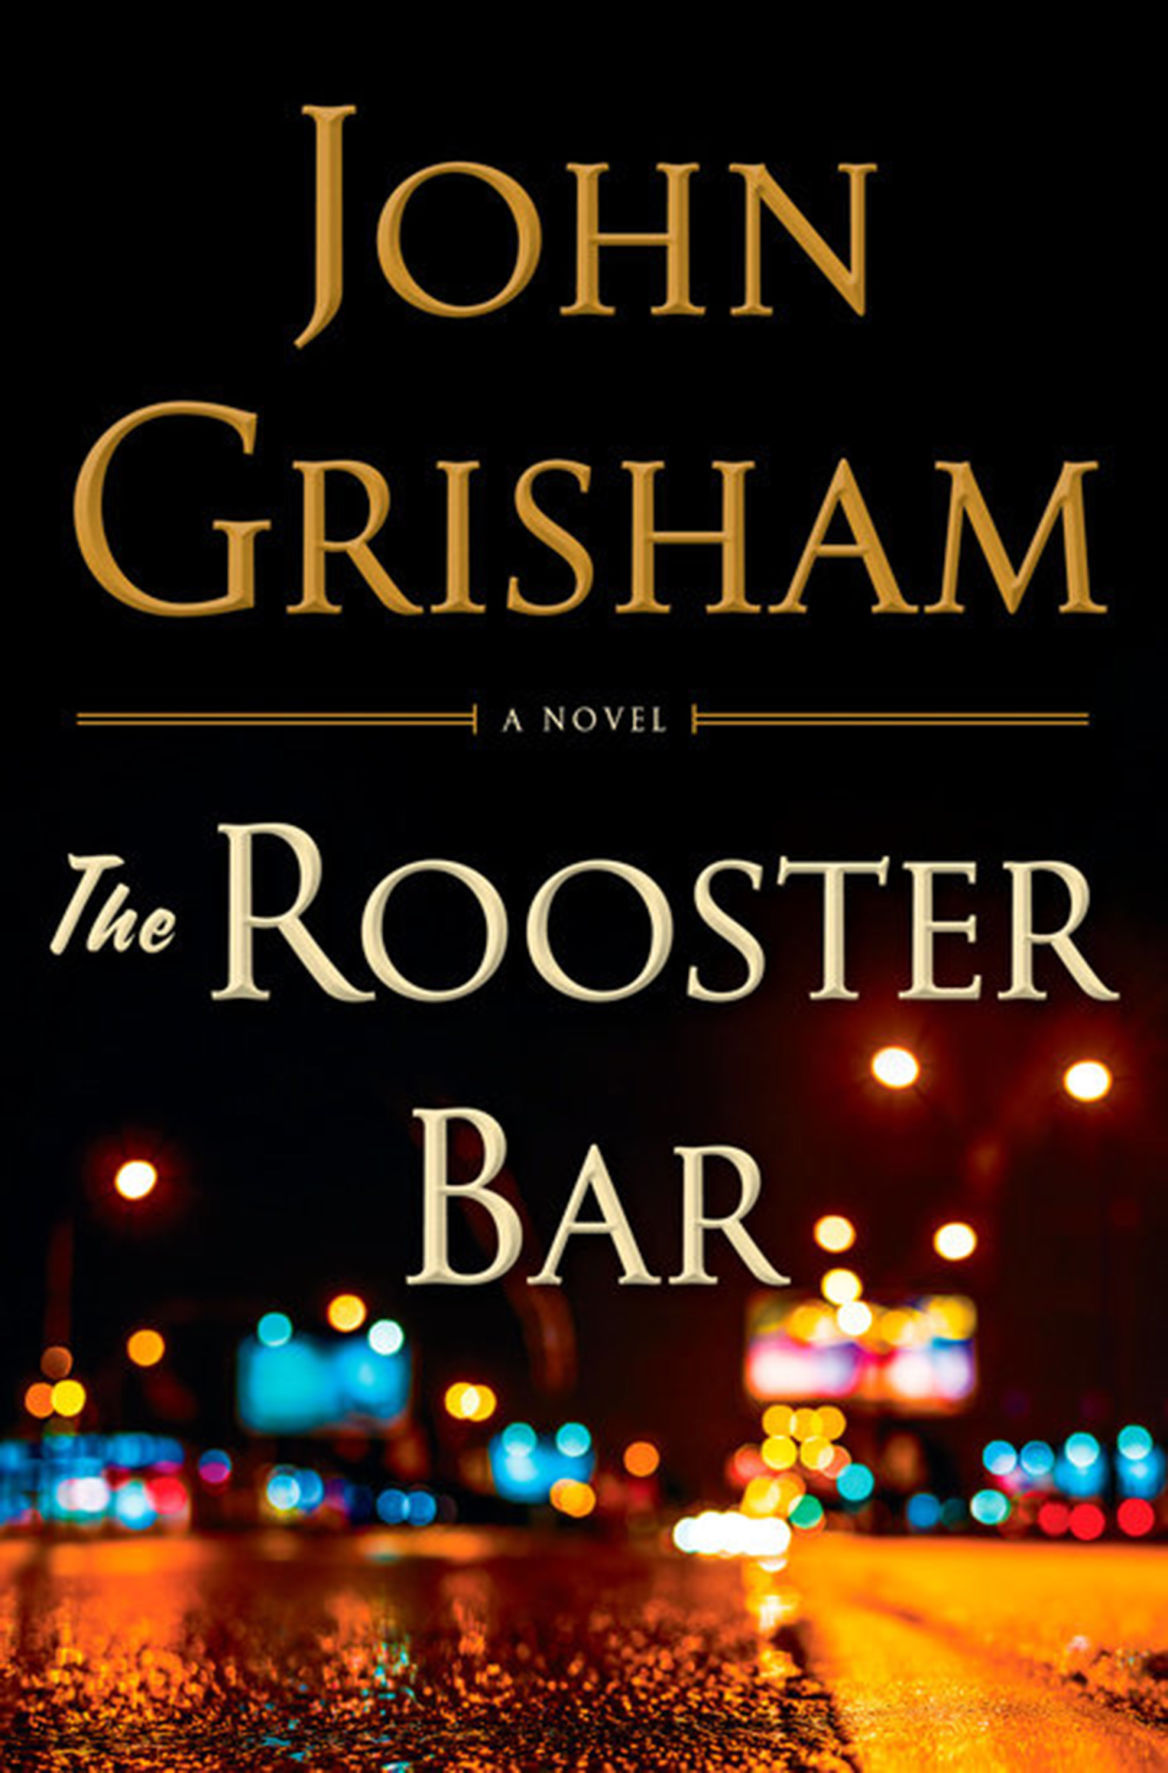 BOOKS BOOK-ROOSTERBAR-REVIEW PG